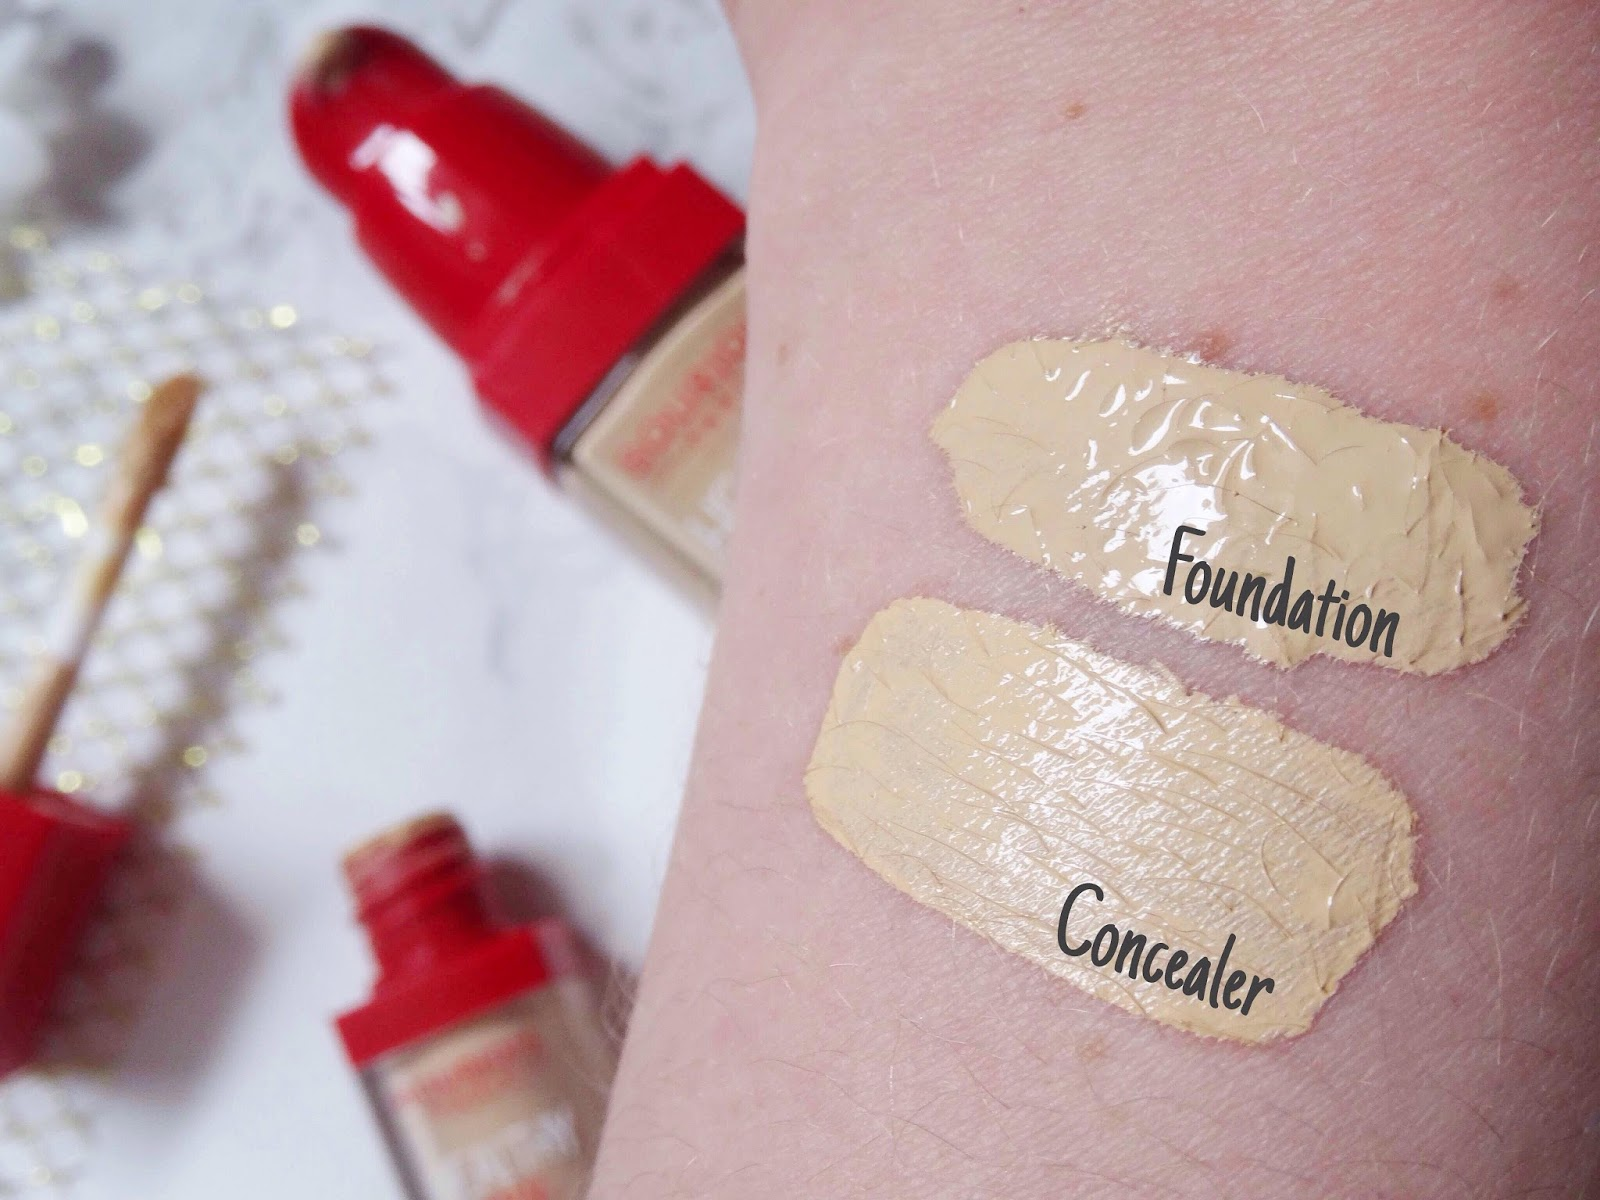 Bourjois Healthy Mix Foundation and Concealer Light Swatches